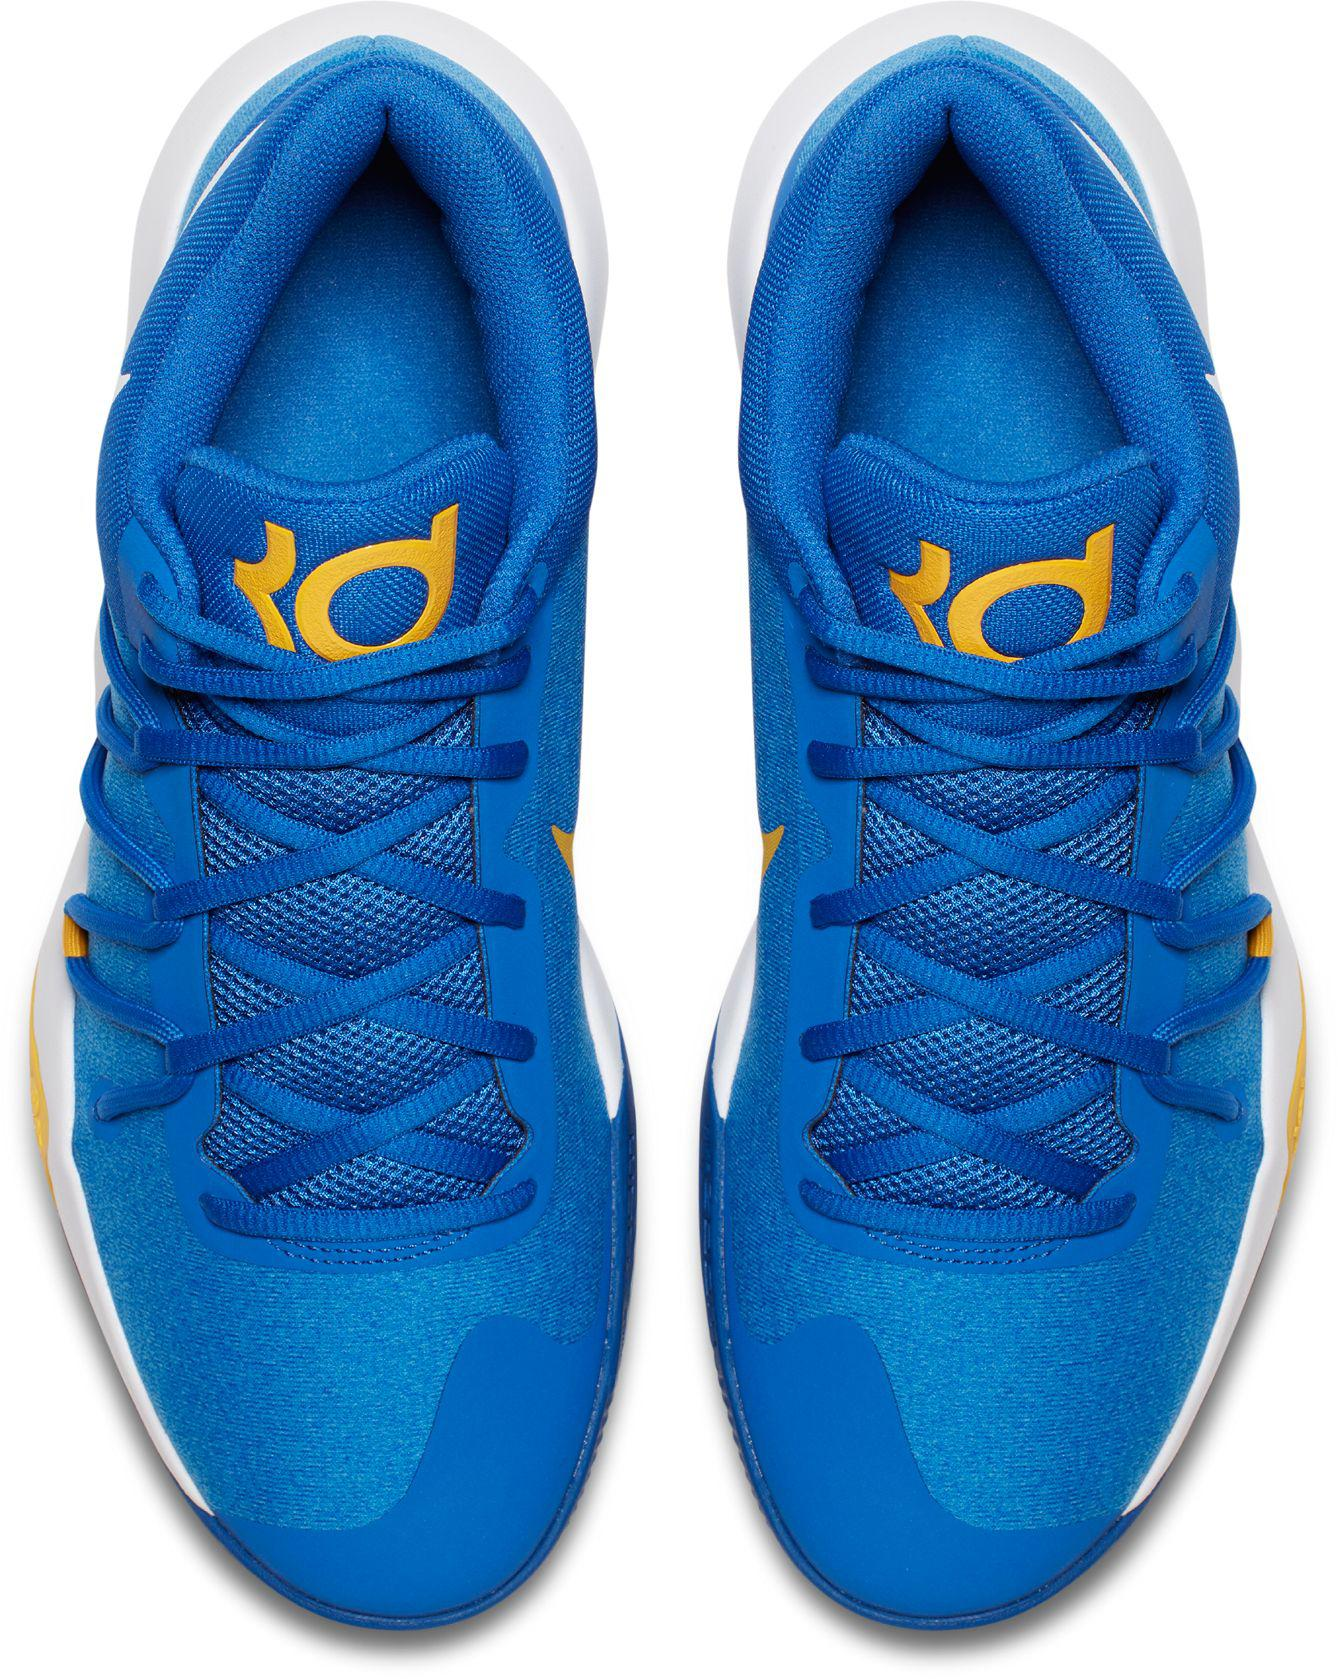 973946fabf21 Nike Kd Trey 5 V Basketball Shoes in Blue for Men - Lyst